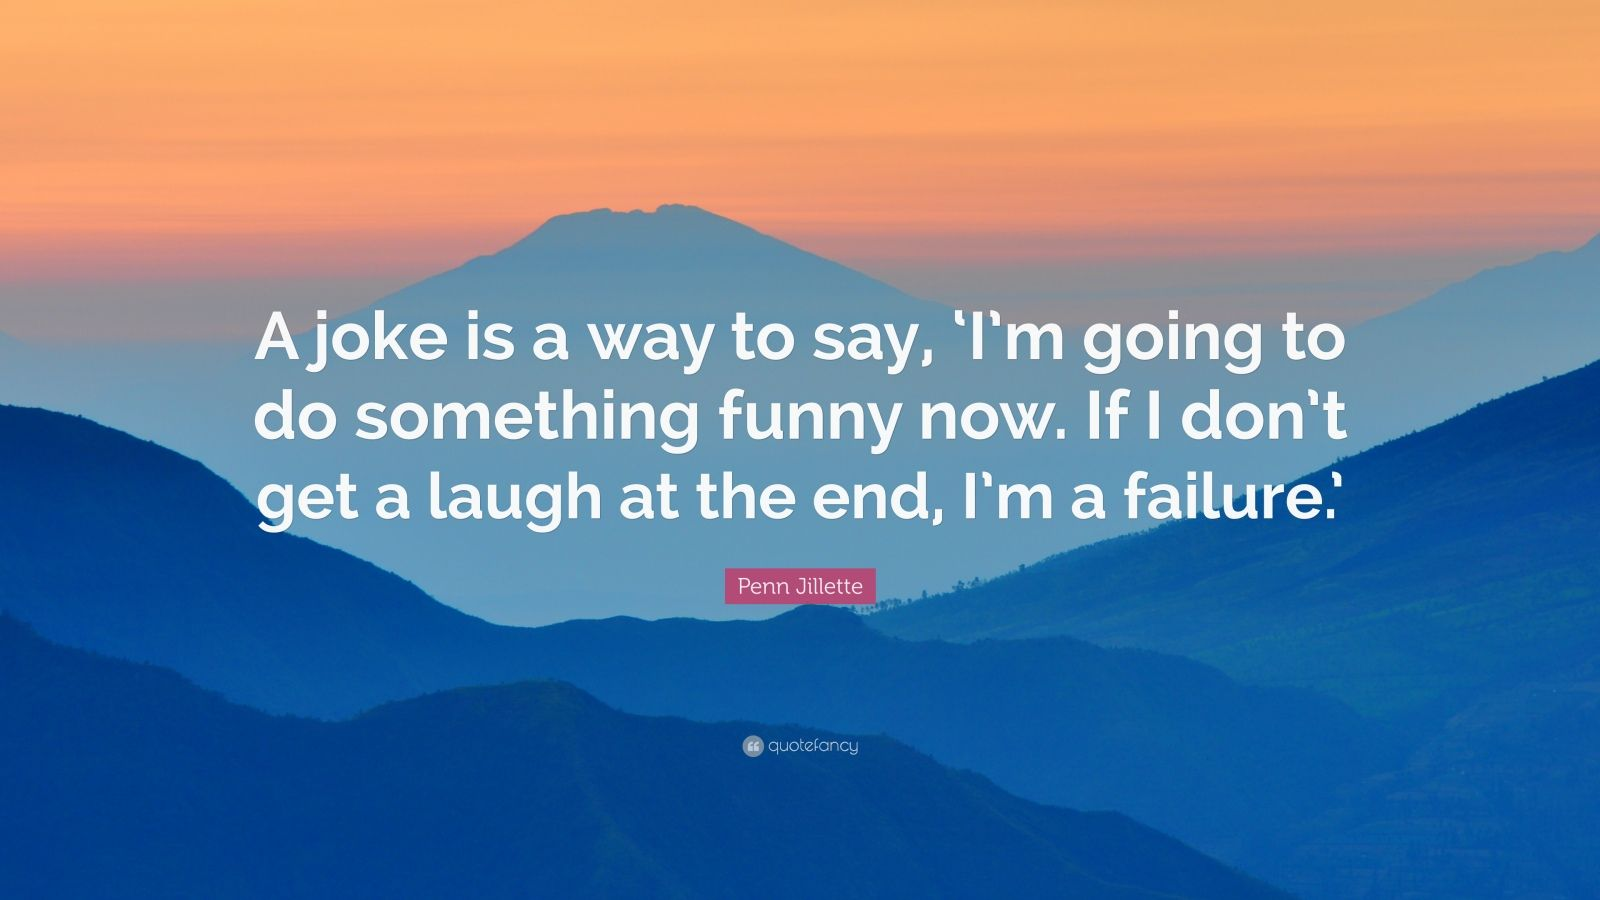 """Penn Jillette Quote: """"A joke is a way to say, 'I'm going to do something funny now. If I don't get a laugh at the end, I'm a failure.'"""""""